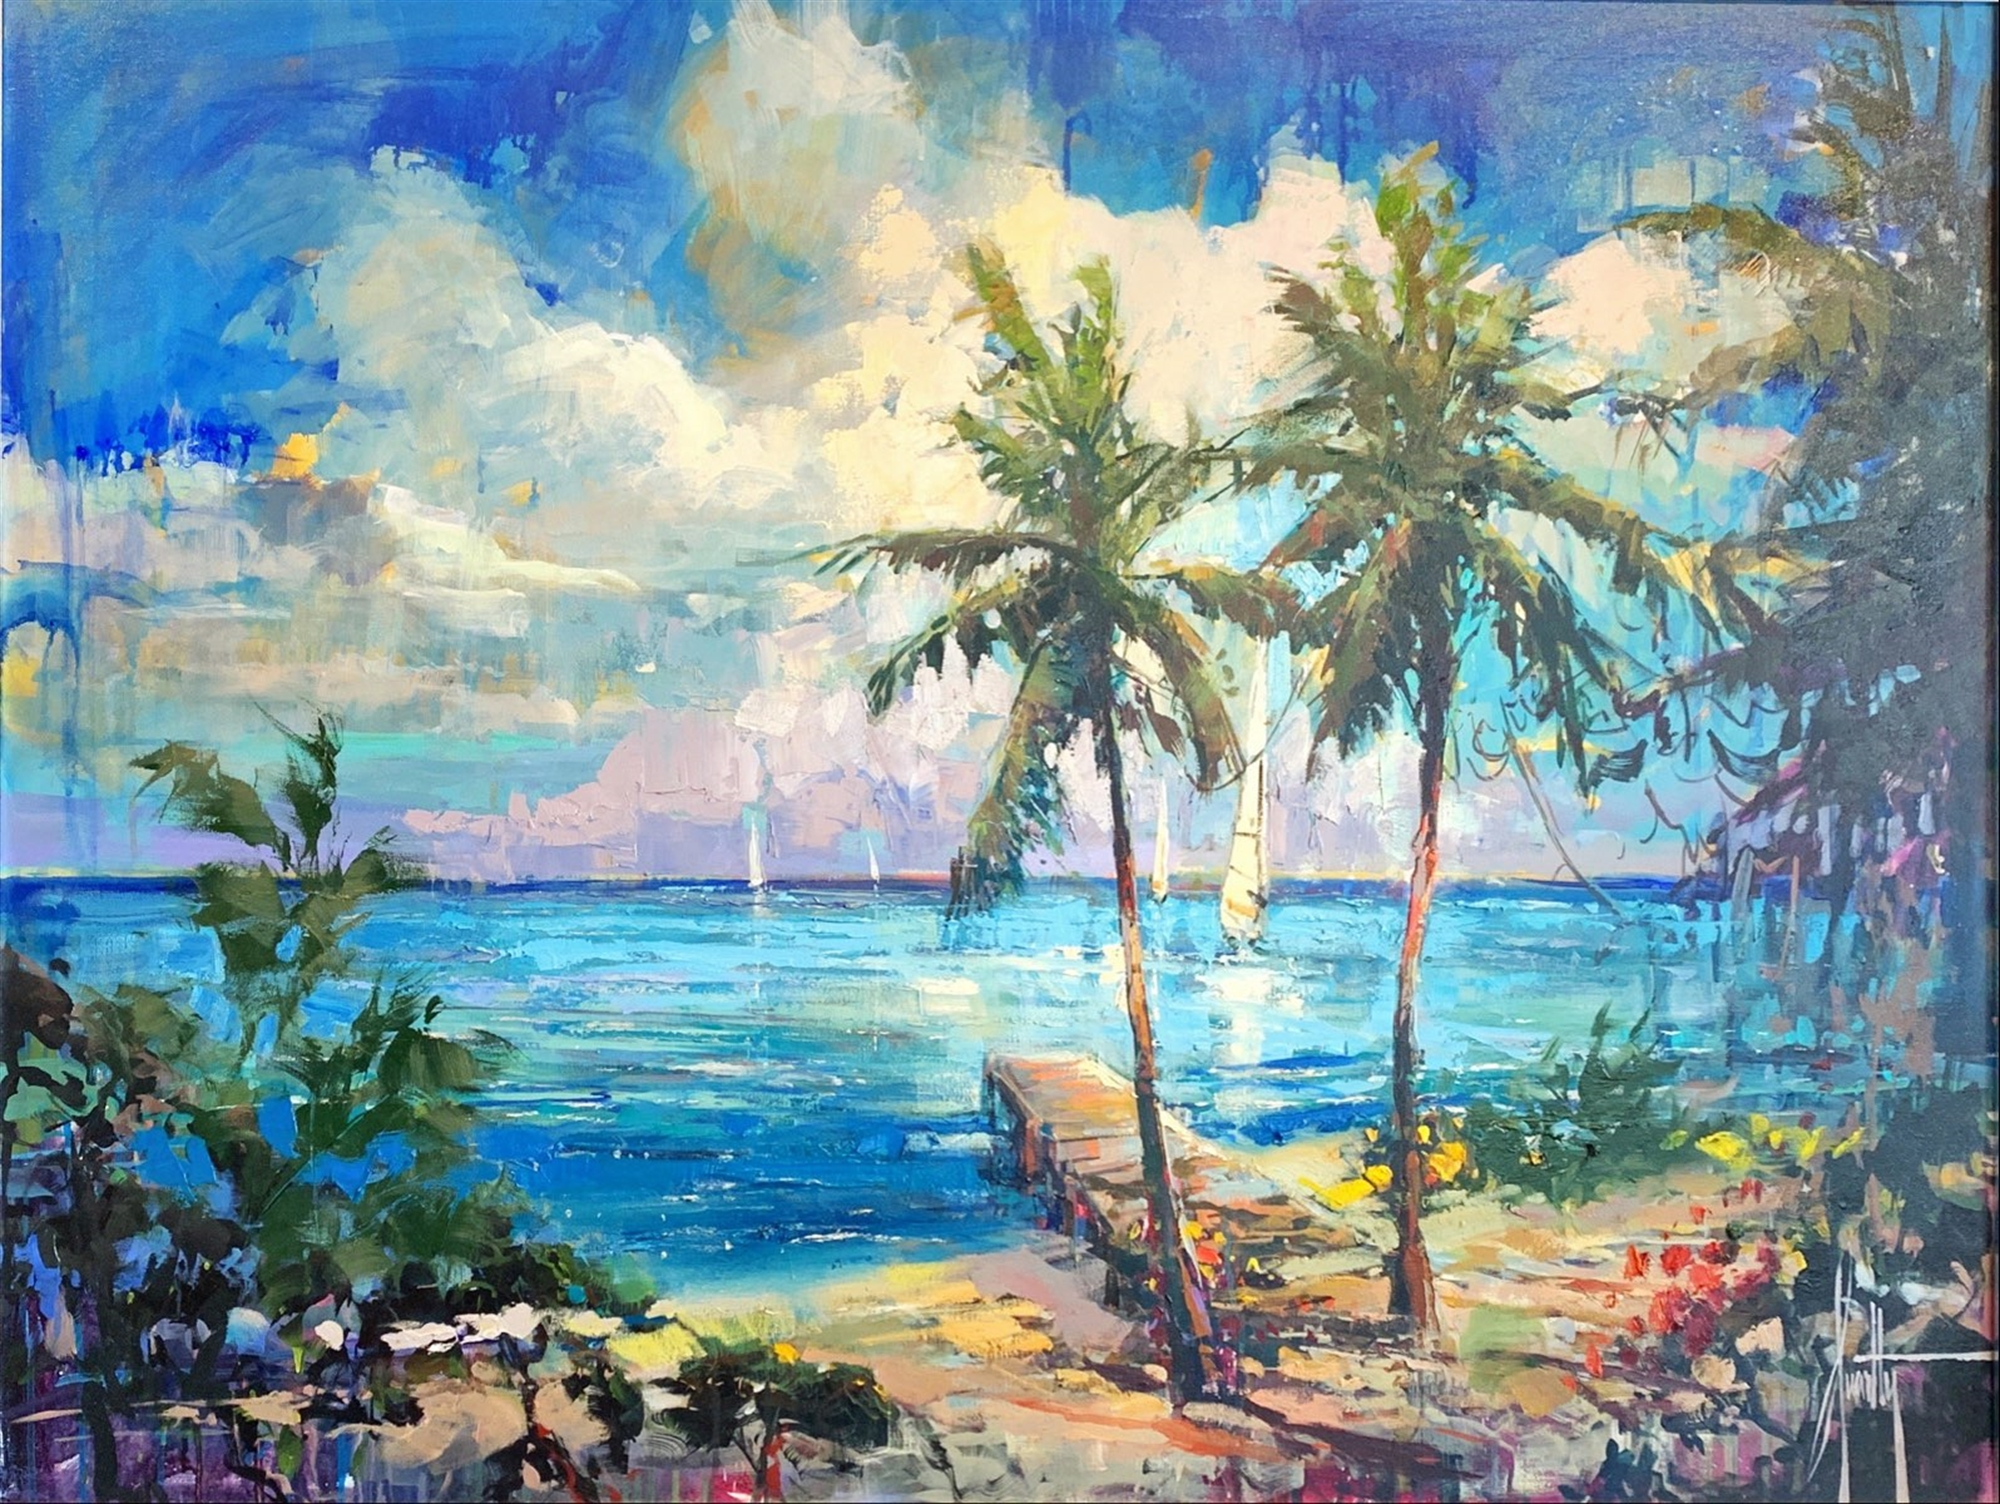 Islamorada Escape by Steven Quartly